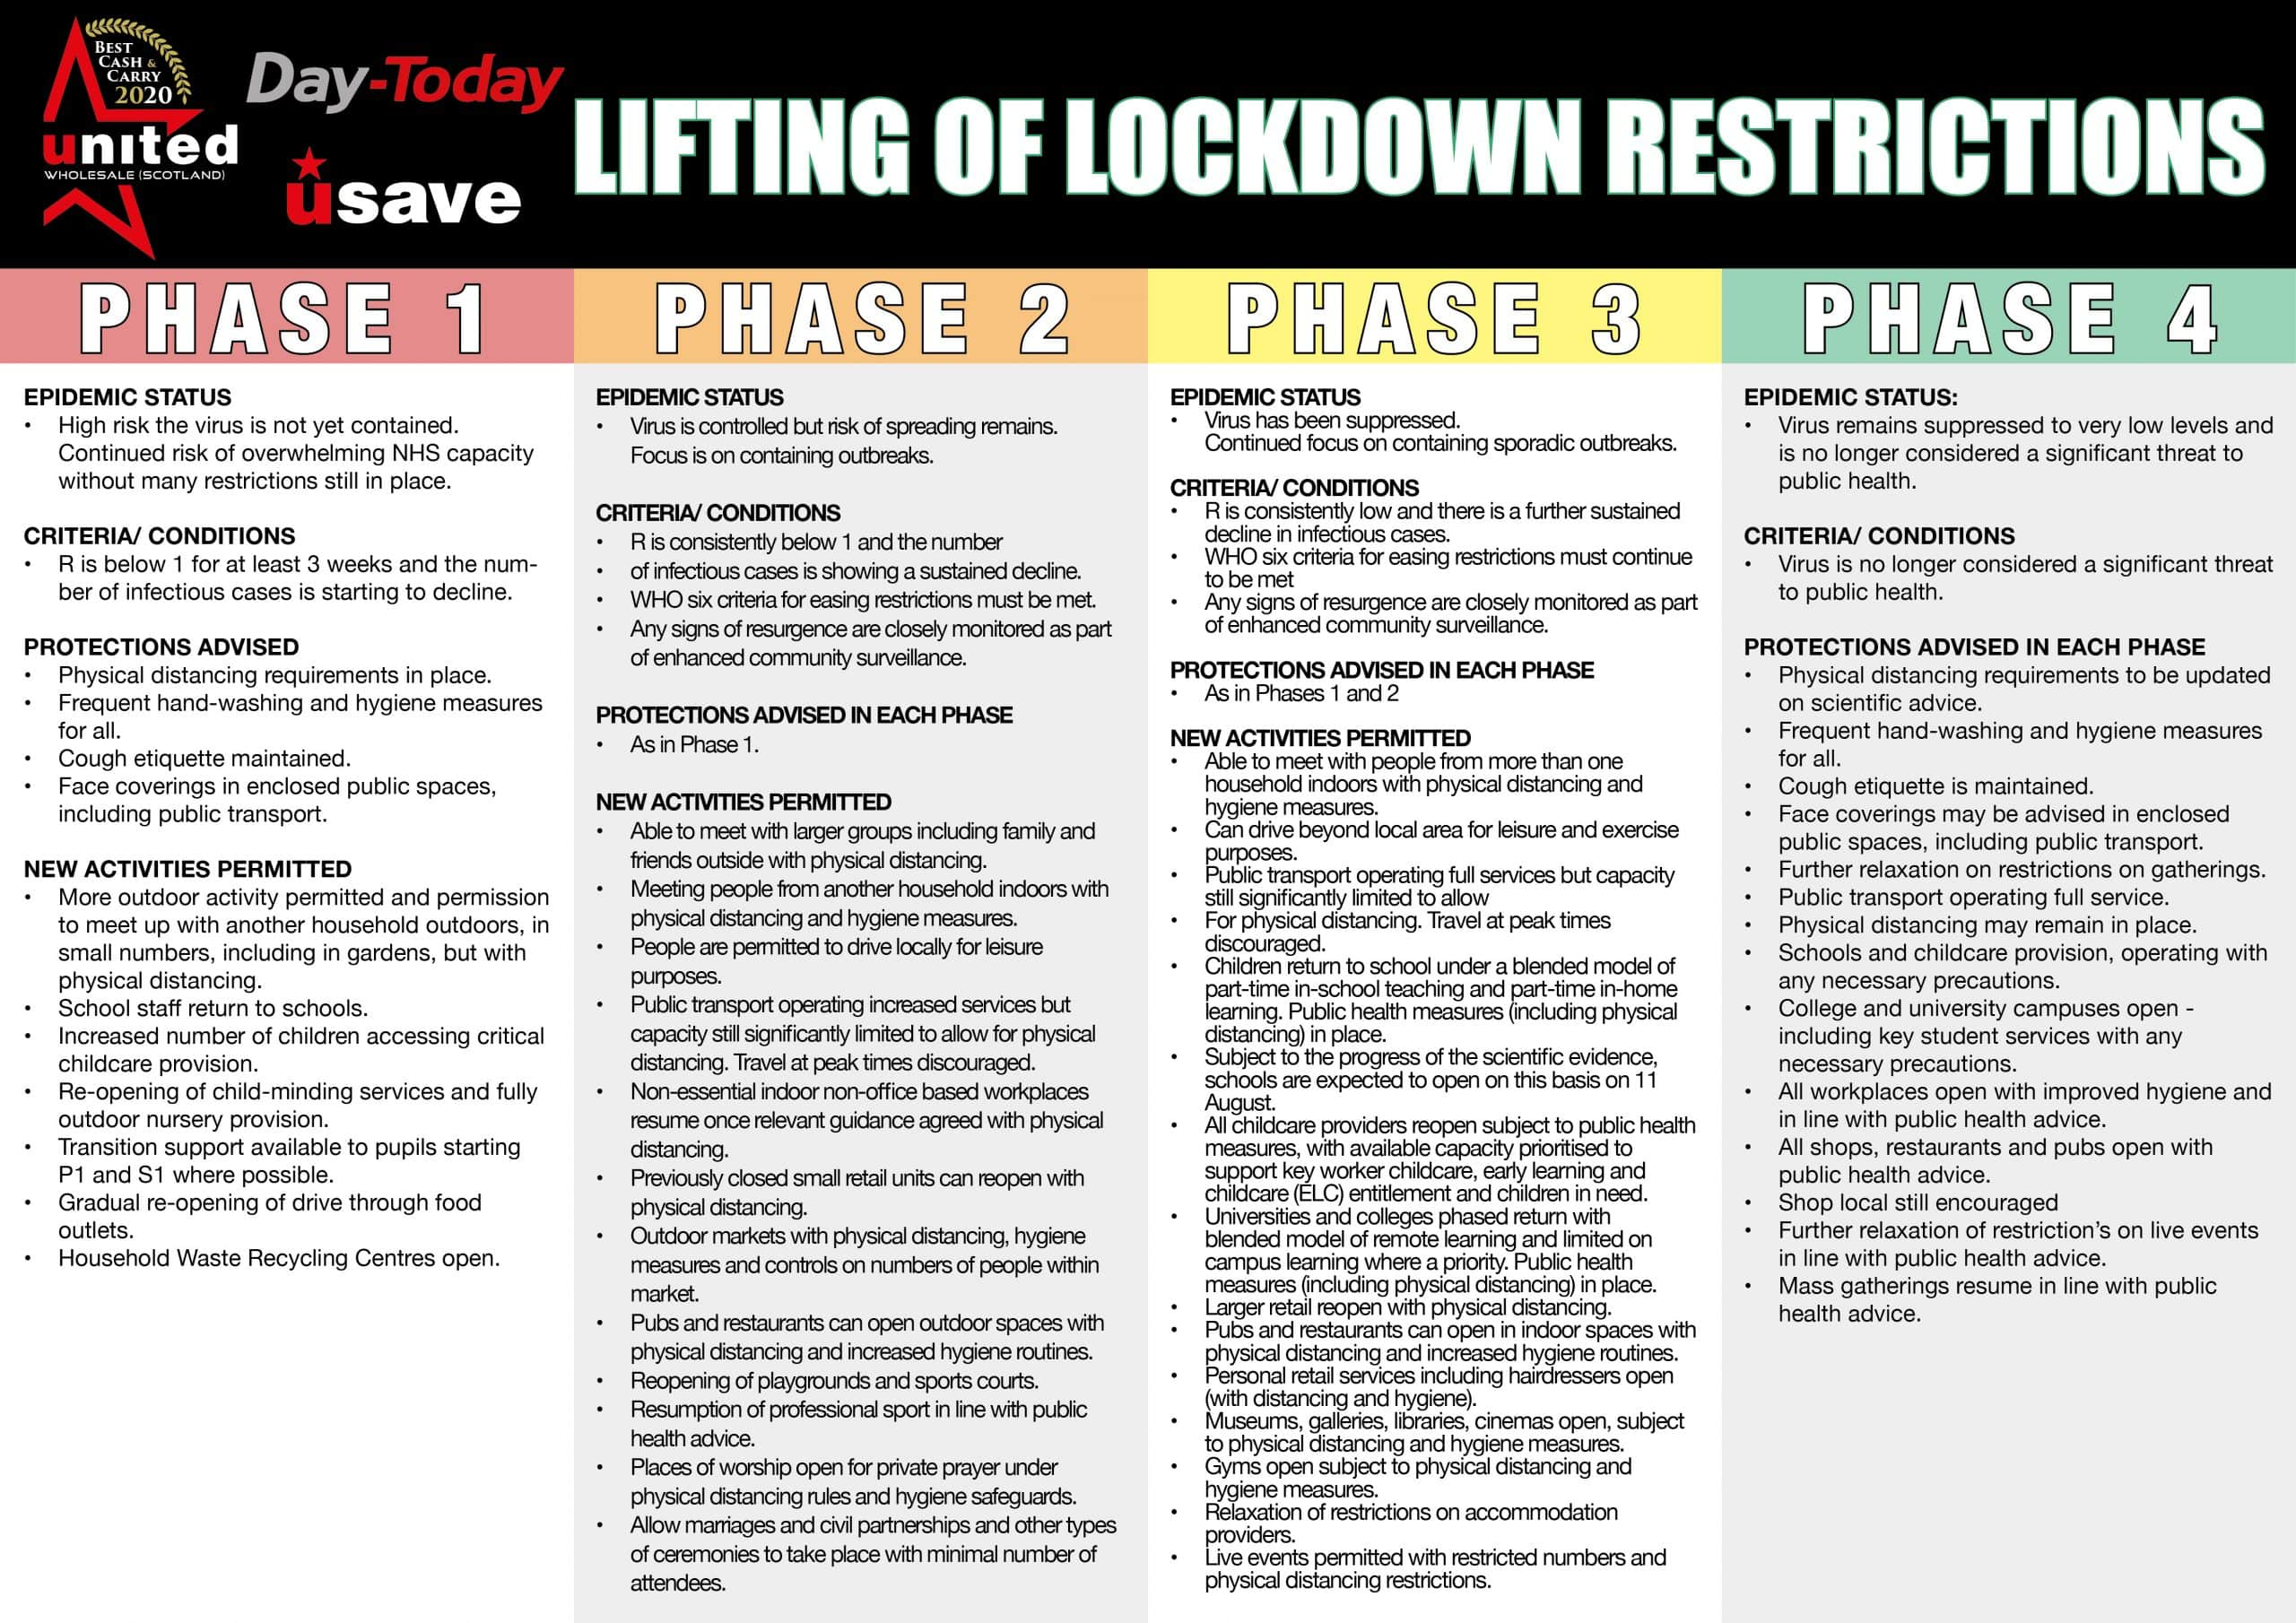 U2b50UWS Guide For Phased Lifting Of Lockdown Restrictions